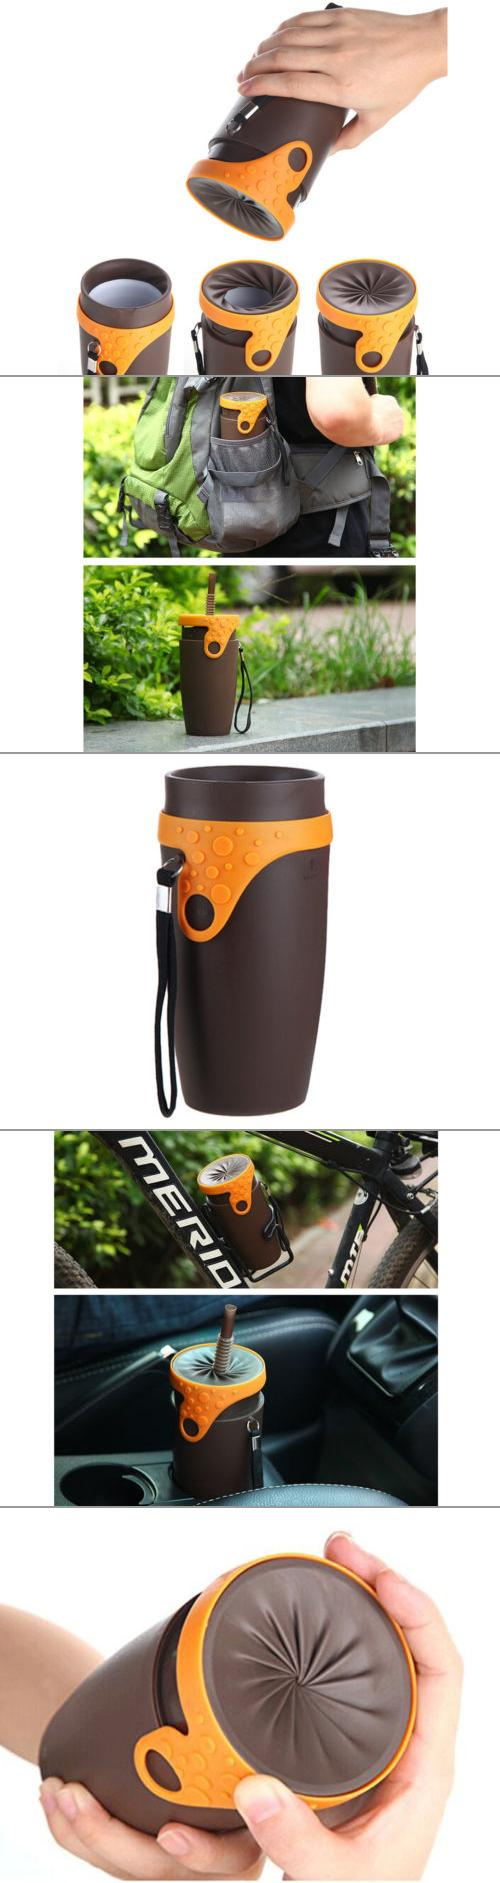 Stay hydrated with the perfect unspillable, unbreakable, cool, thermos twist cup!